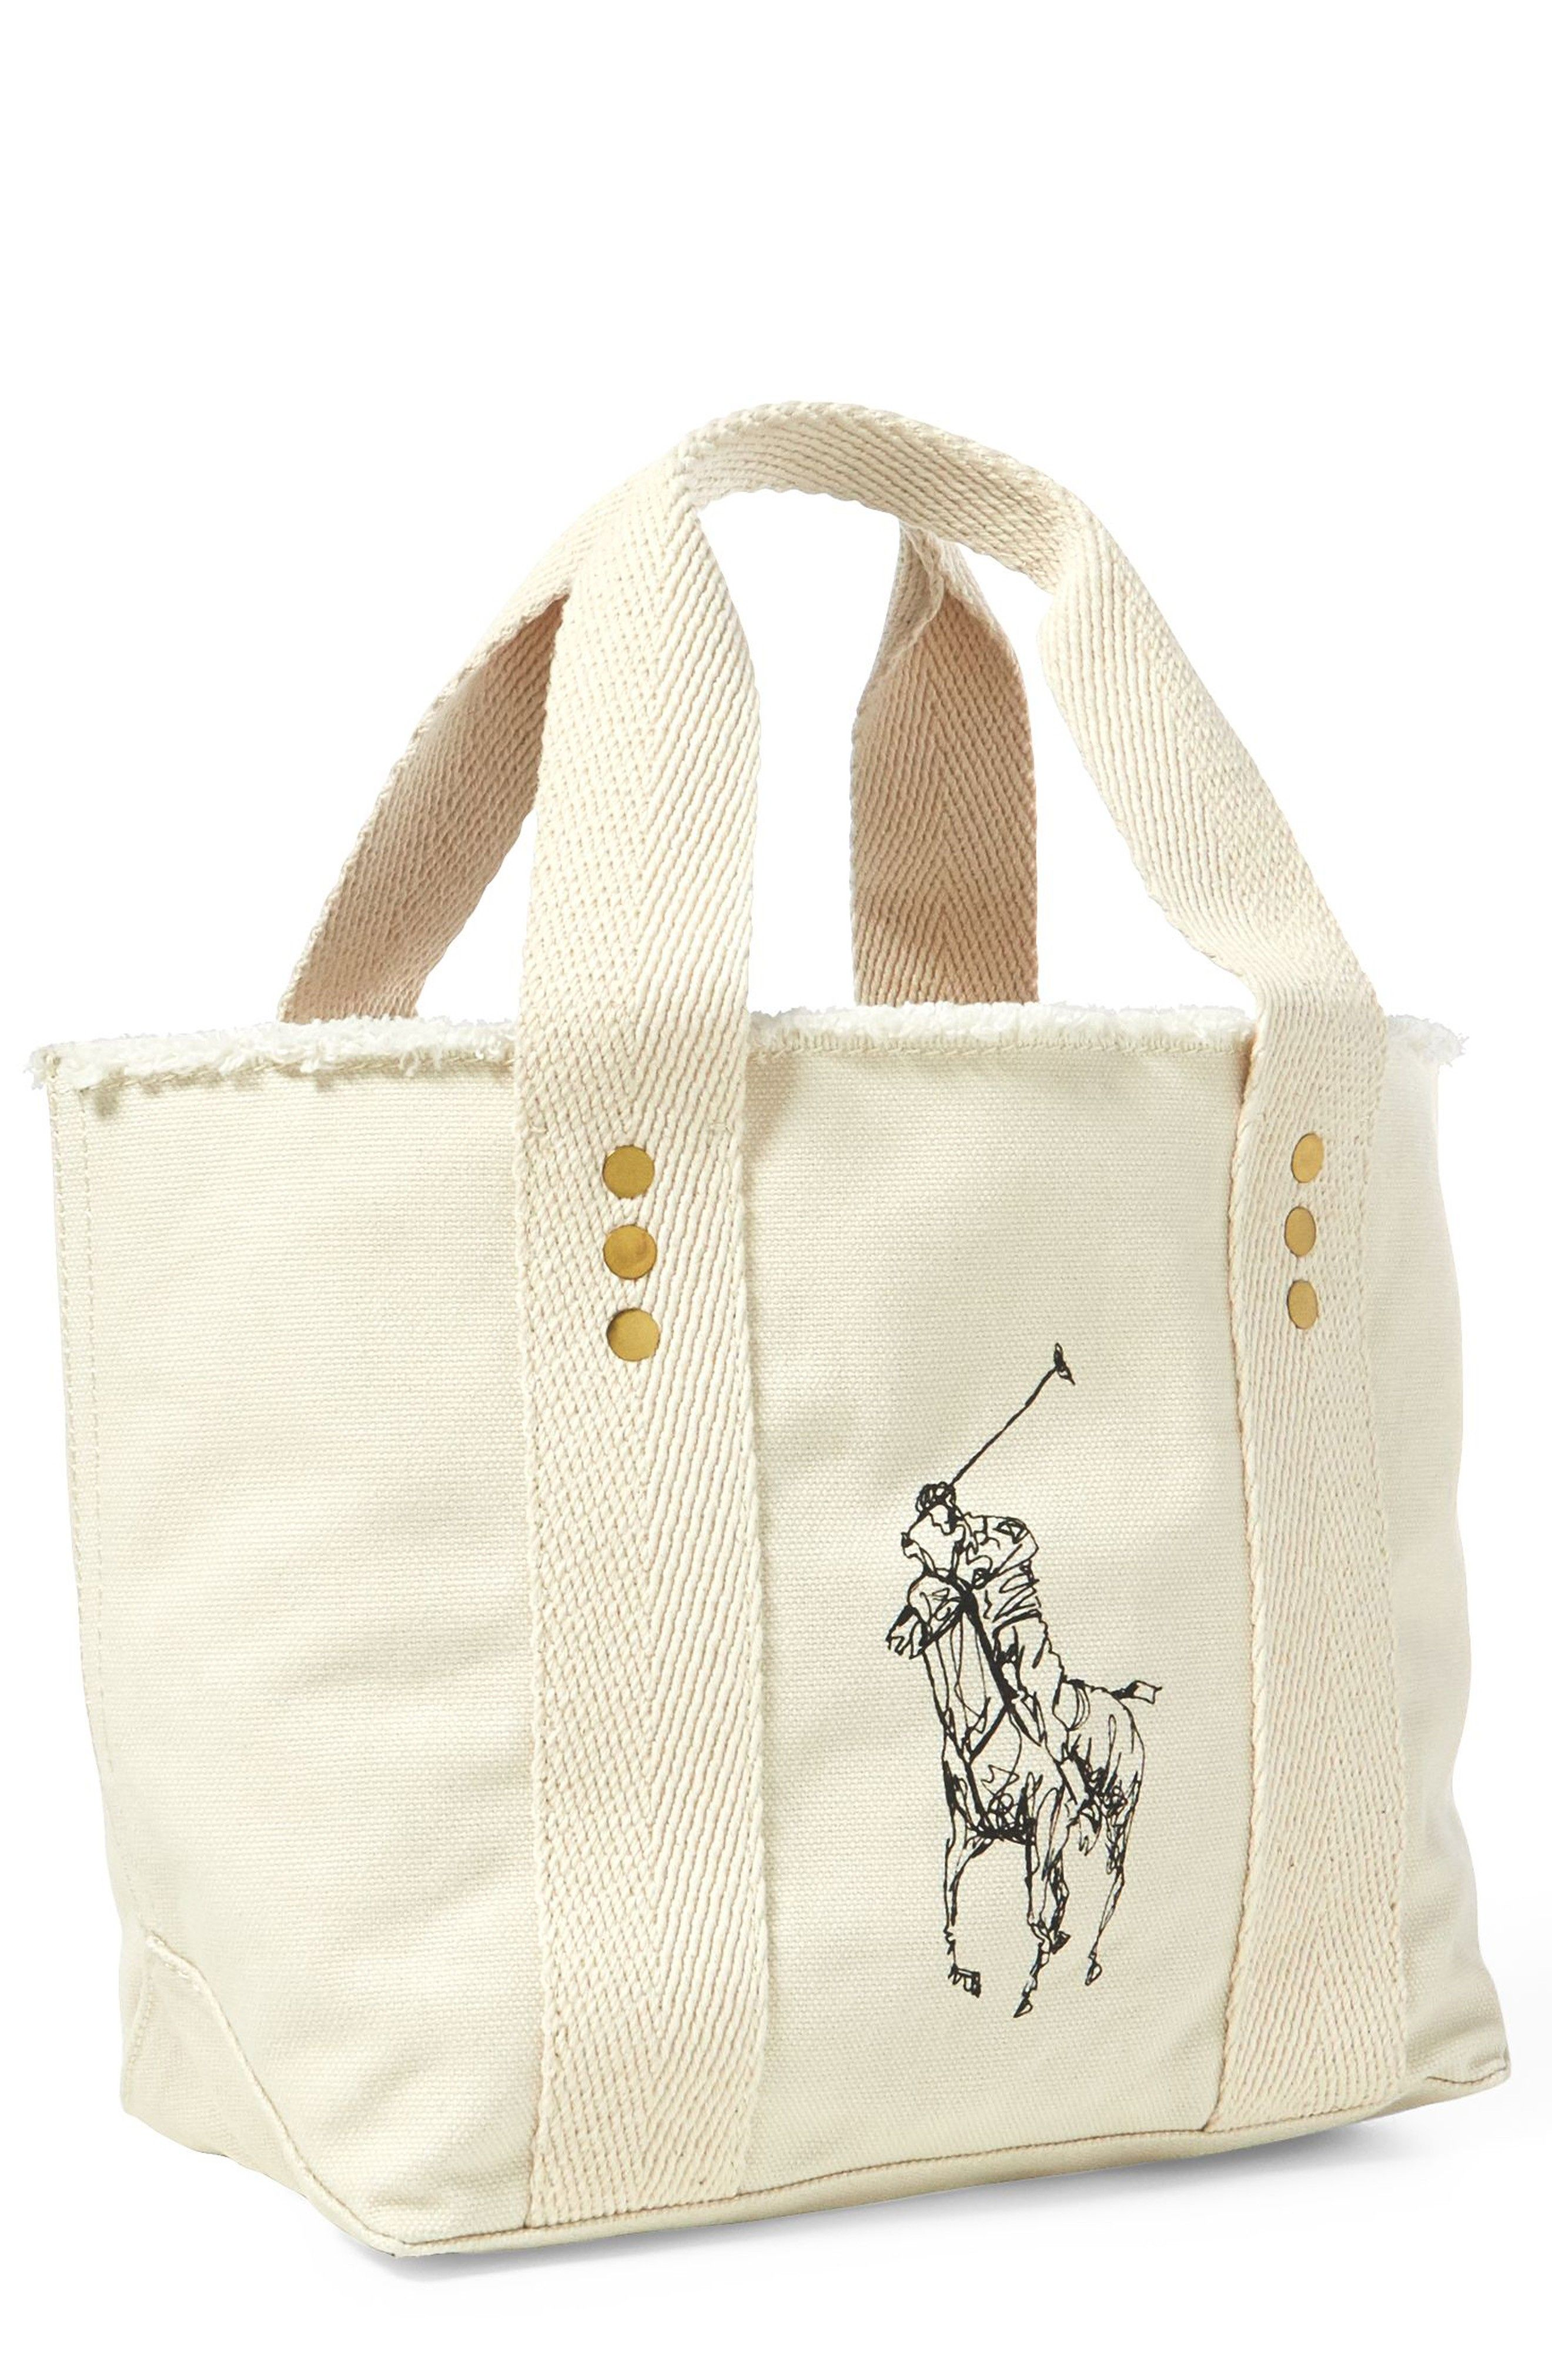 db1954b51228 New POLO RALPH LAUREN Small Pony Canvas Tote online. Find the perfect LOVE  Moschino Bags